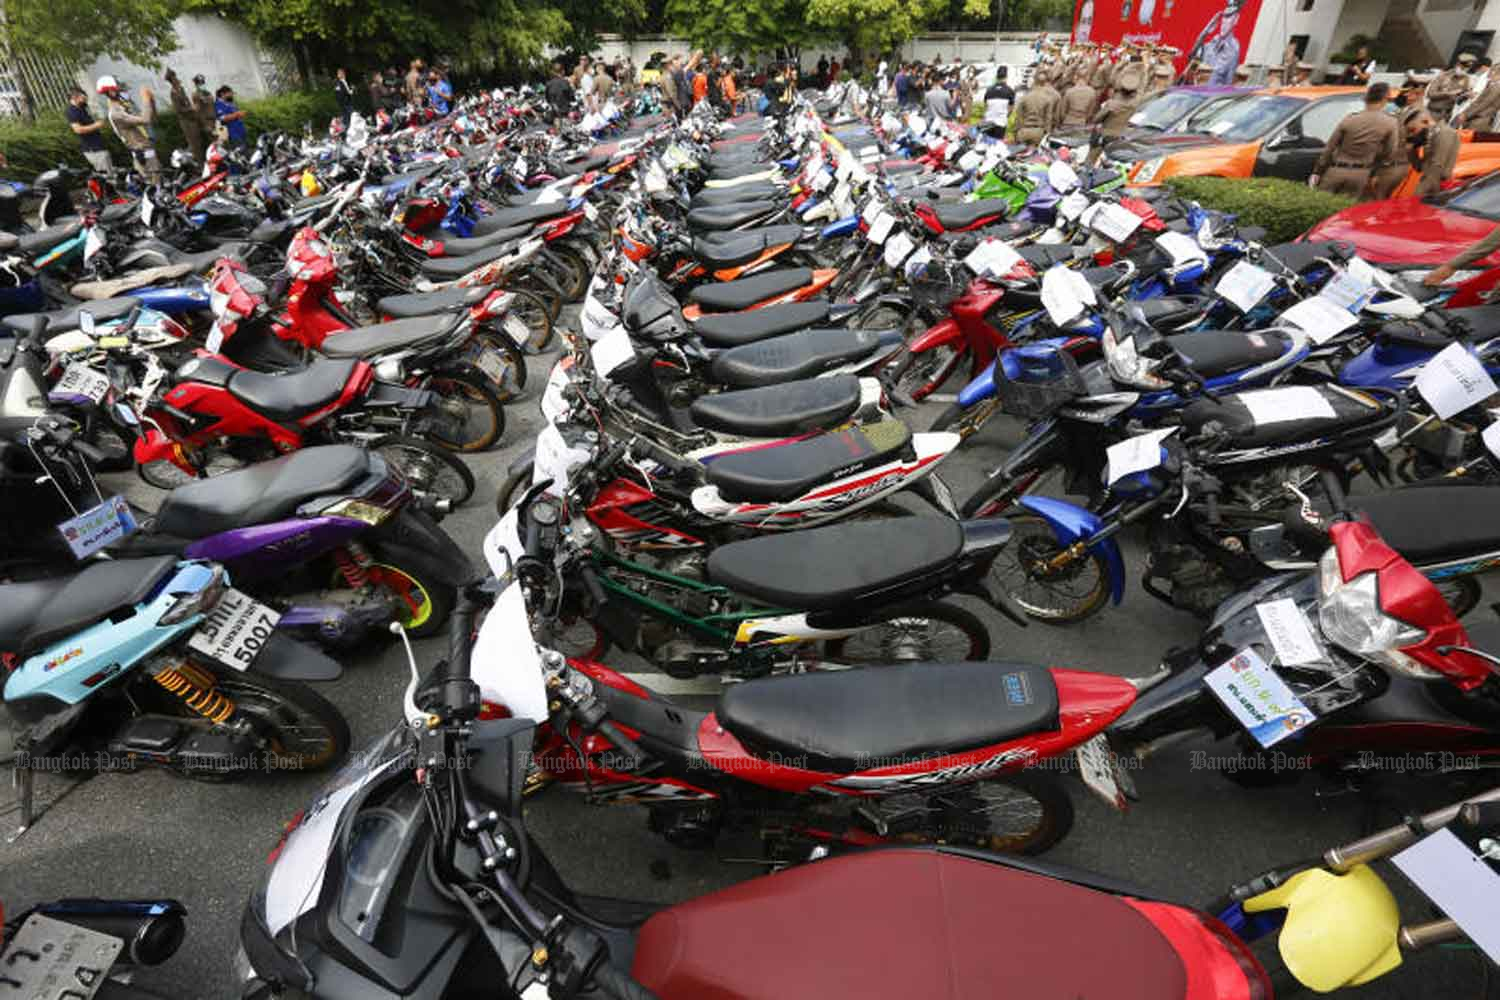 Dozens of motorcycles seized from illegal street racers are on display at the Provincial Police Region 1 in Chatuchak district of Bangkok on Thursday. (Photo: Pattarapong Chatpattarasill)